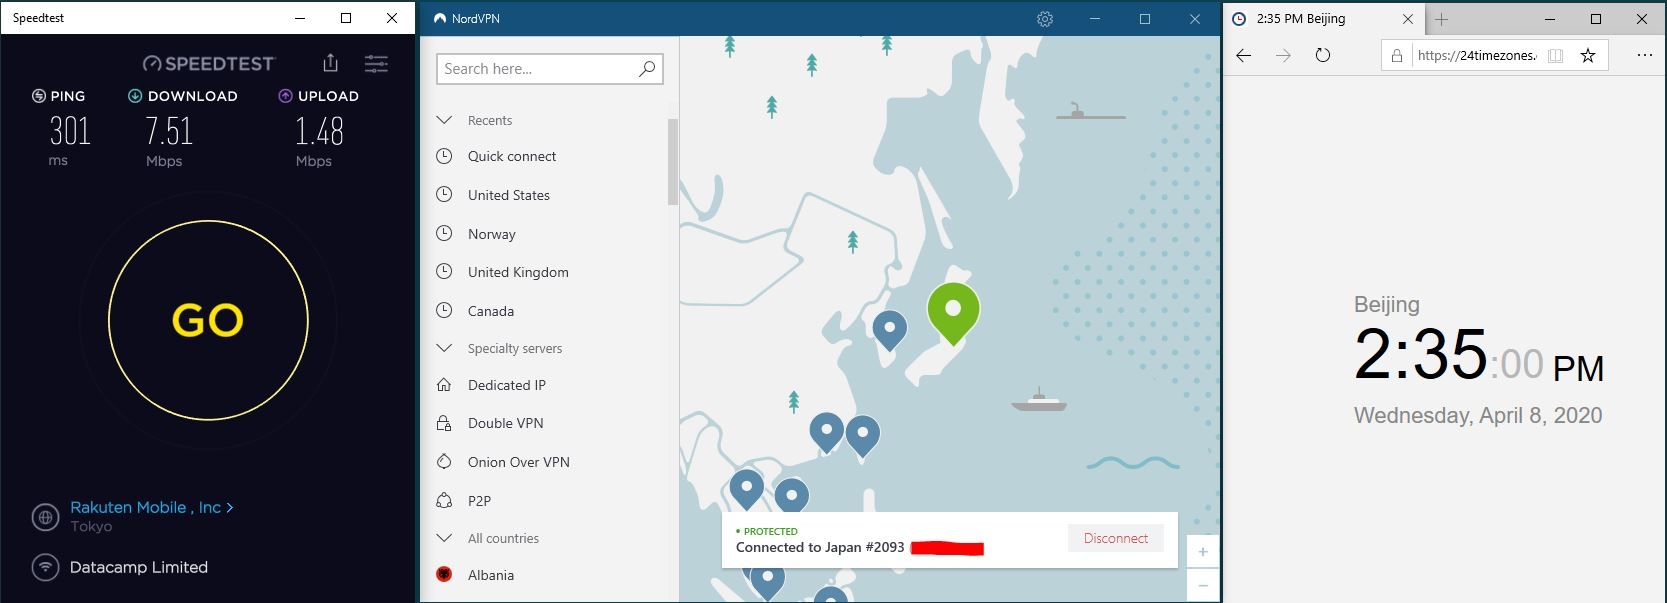 Windows10 NordVPN Japan #2093 中国VPN翻墙 科学上网 SpeedTest测速-20200408